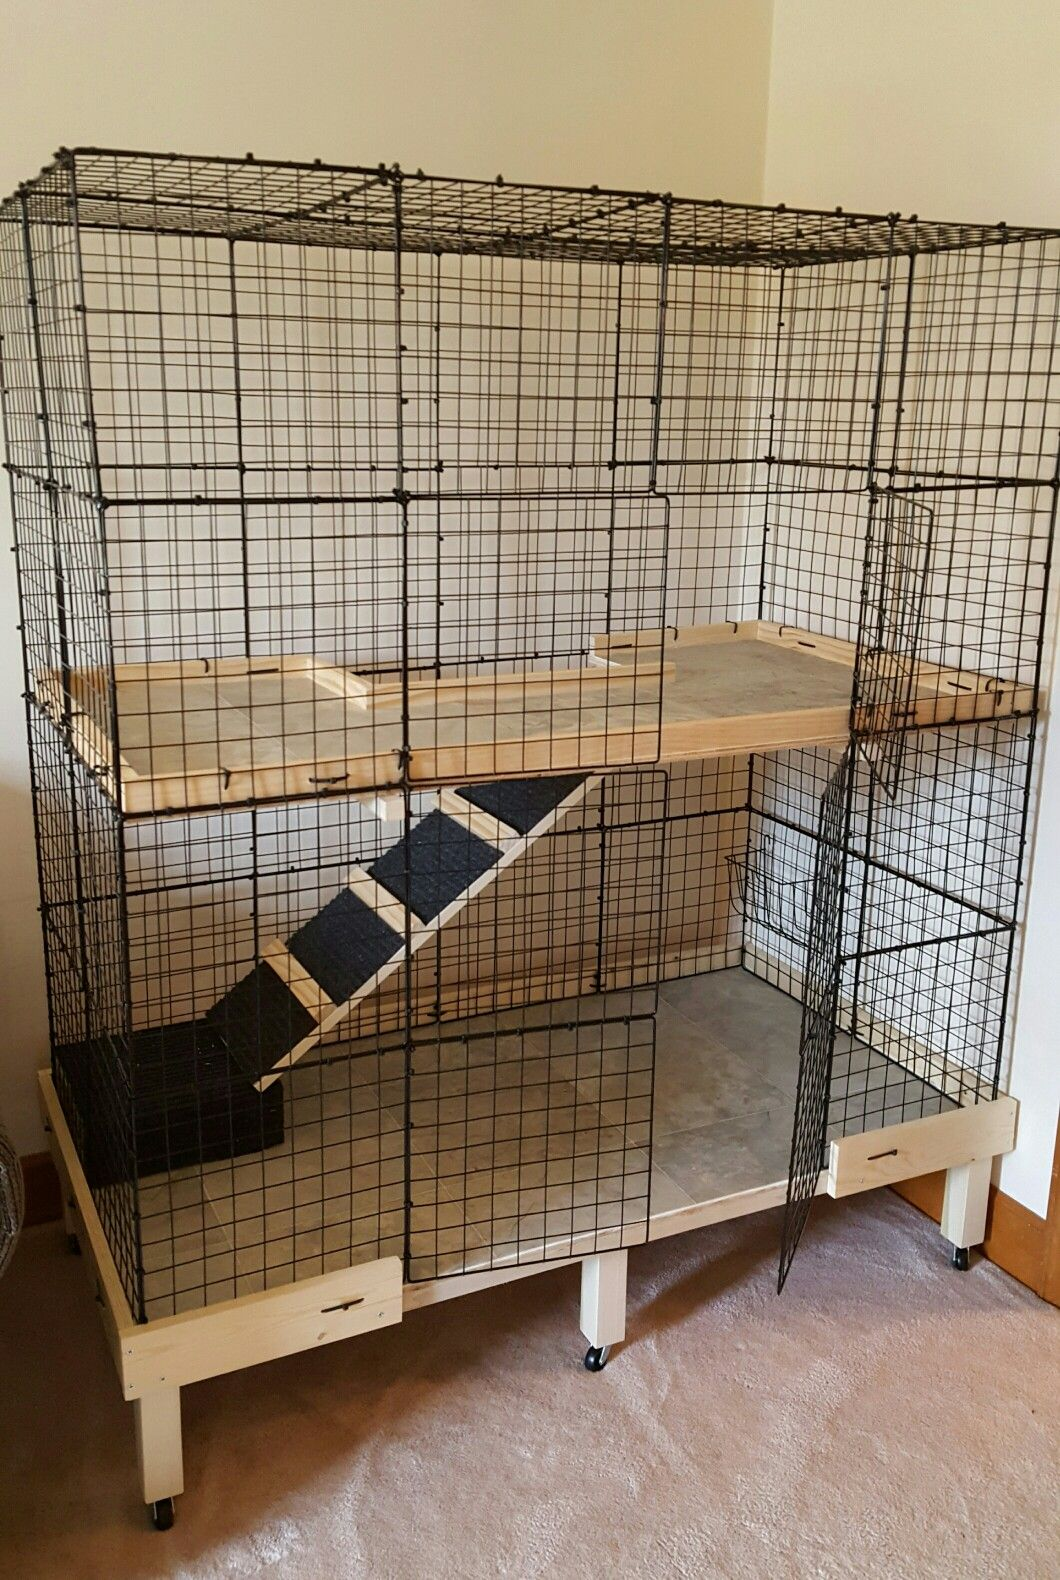 Diy Cage For Rabbit Homemade Flemish Giant Rabbit Cage Aviary Pinterest